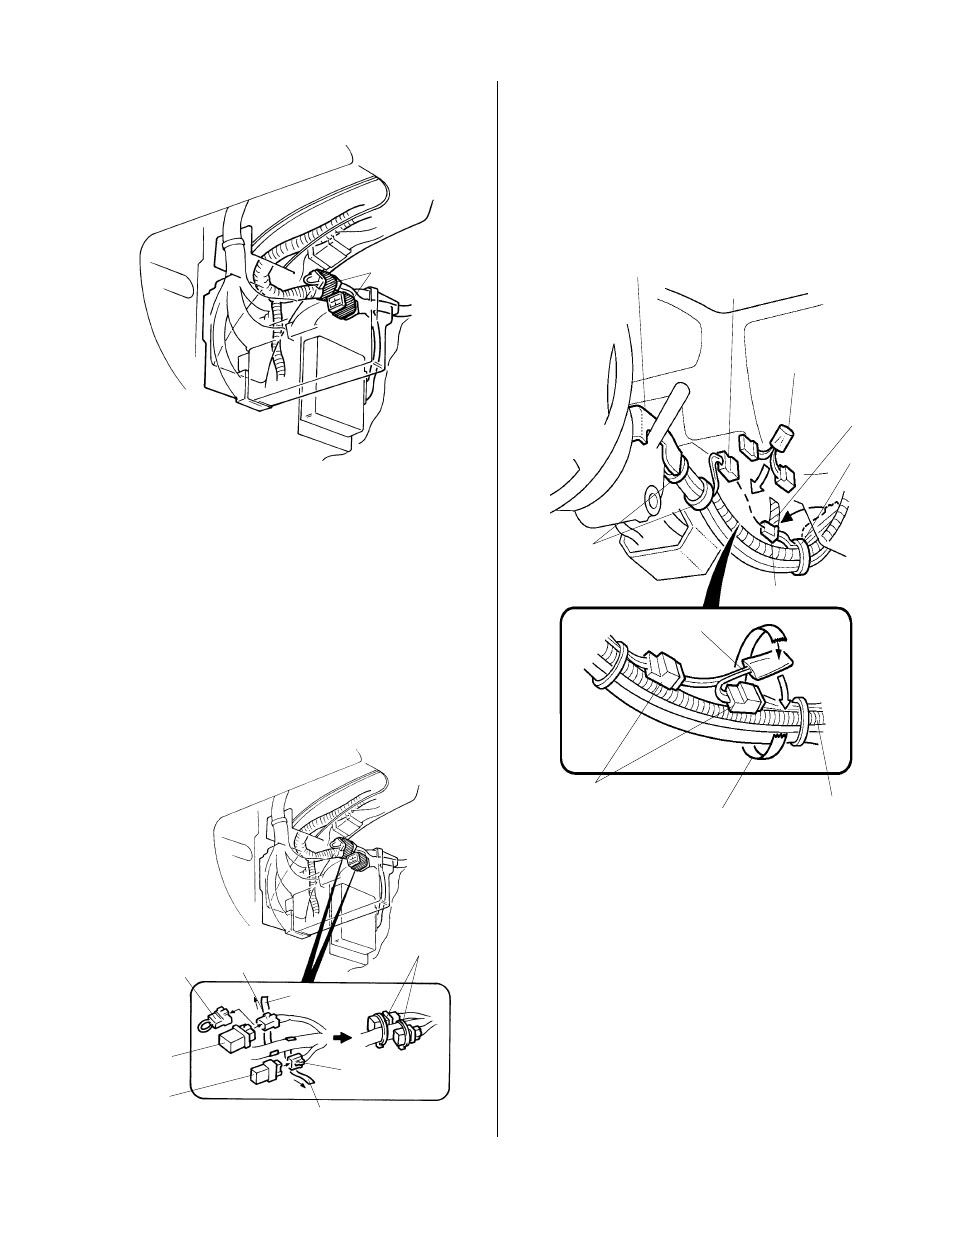 Honda 08e55 S01 100h User Manual Page 7 8 4 Pin Relay With Fuse